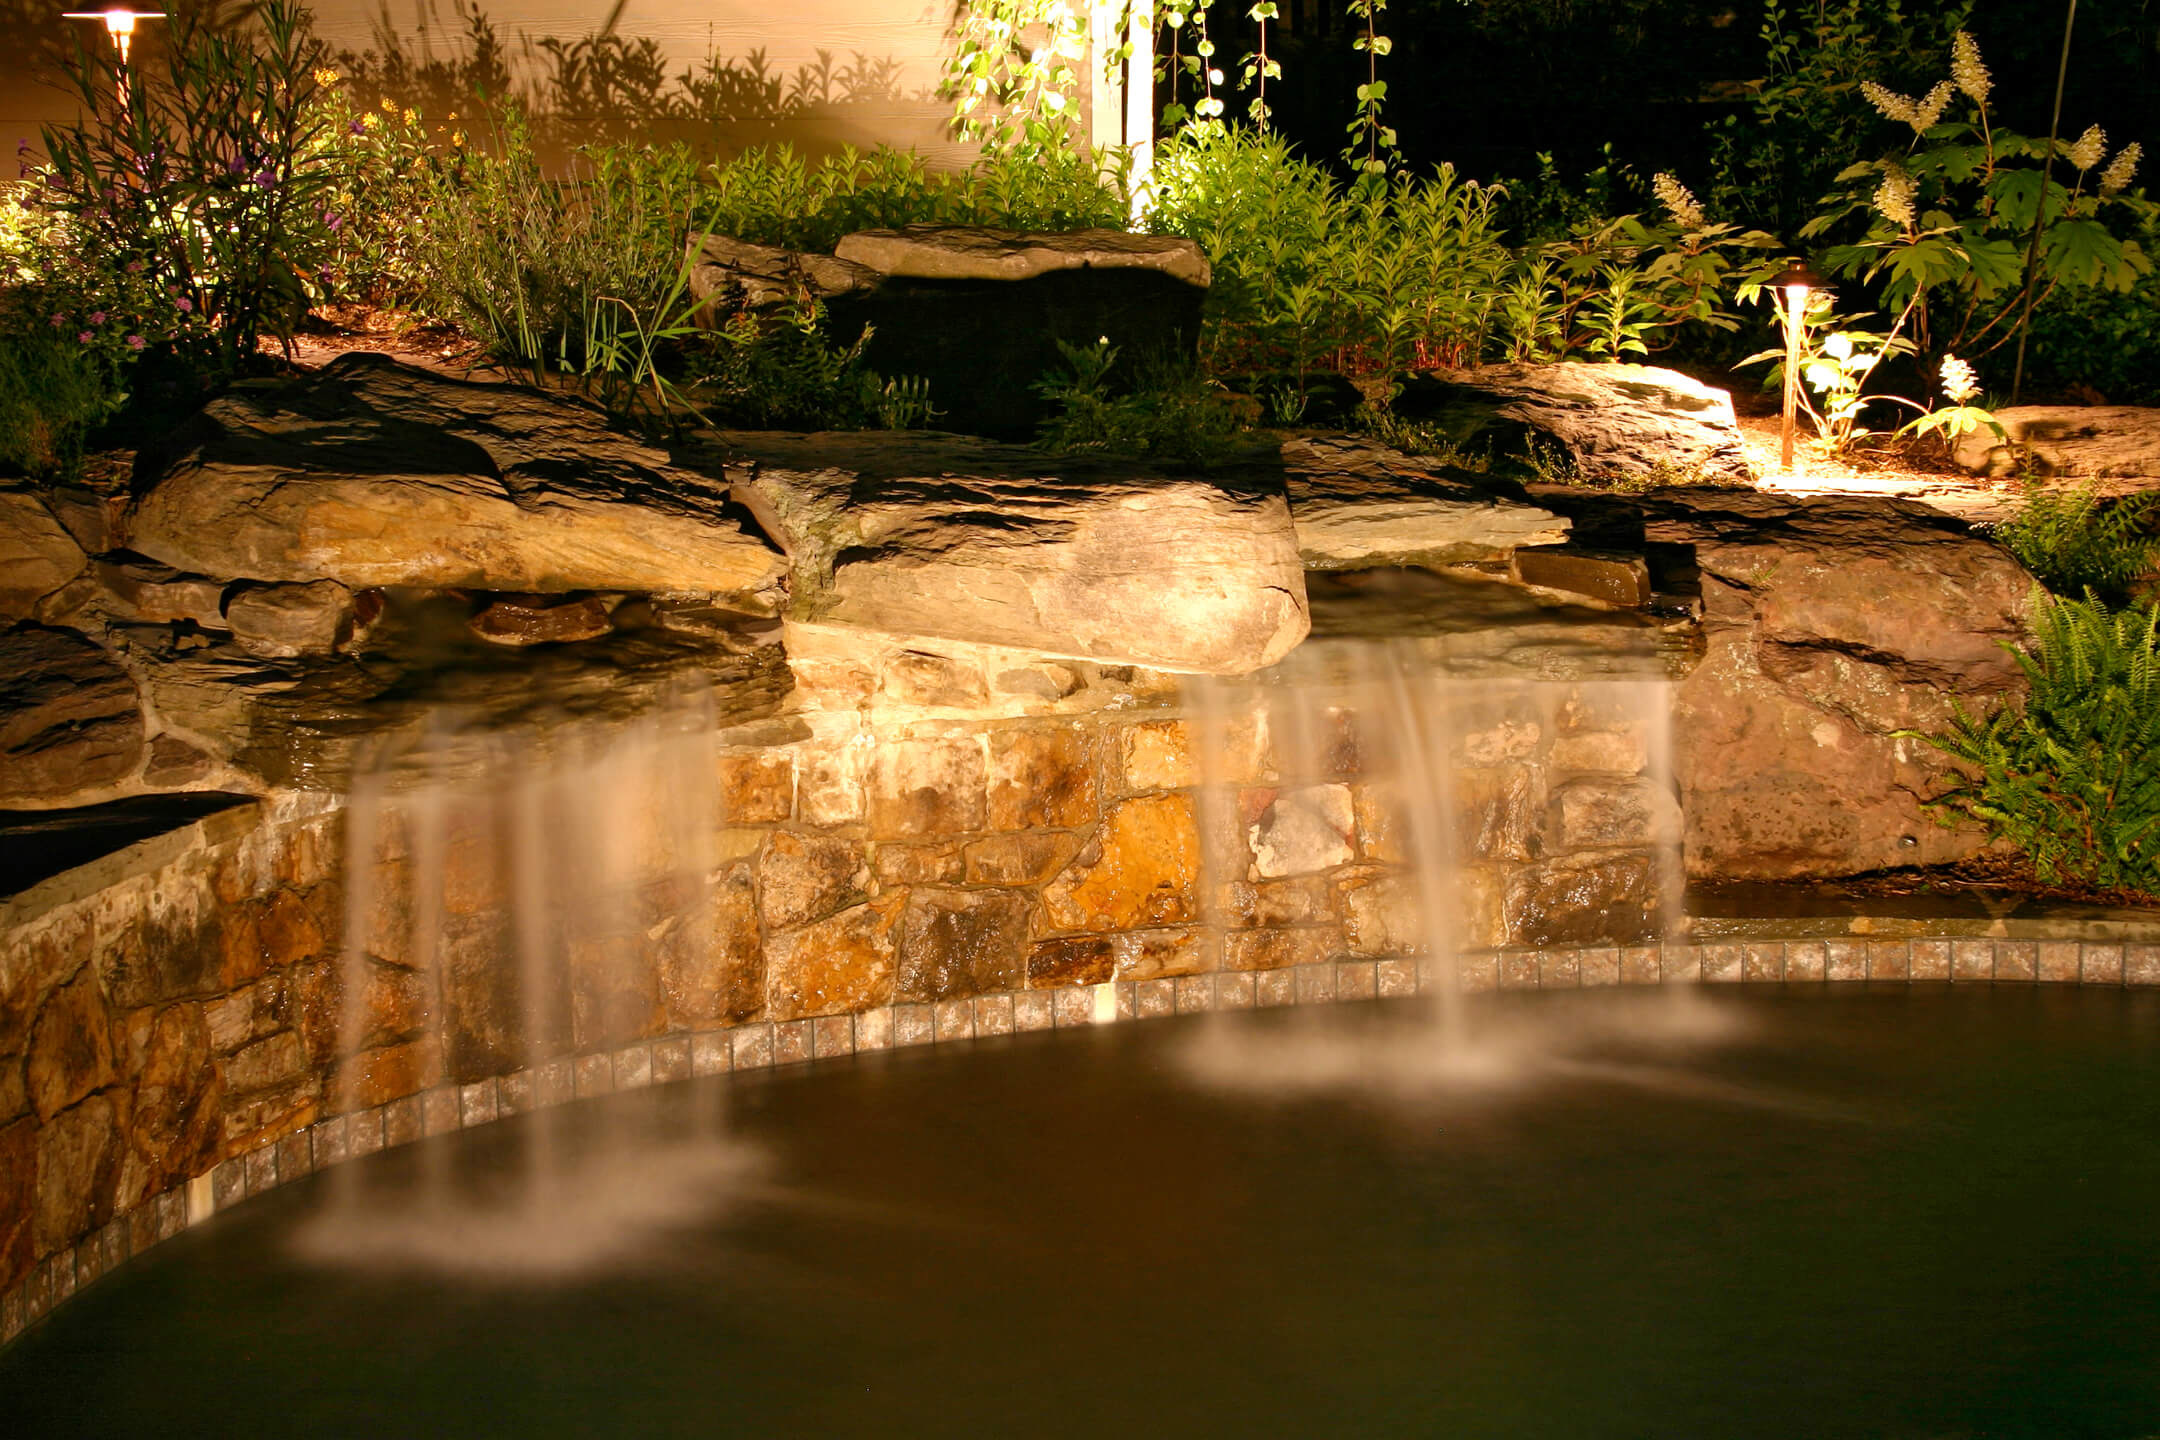 Outdoor lighting system in waterfall